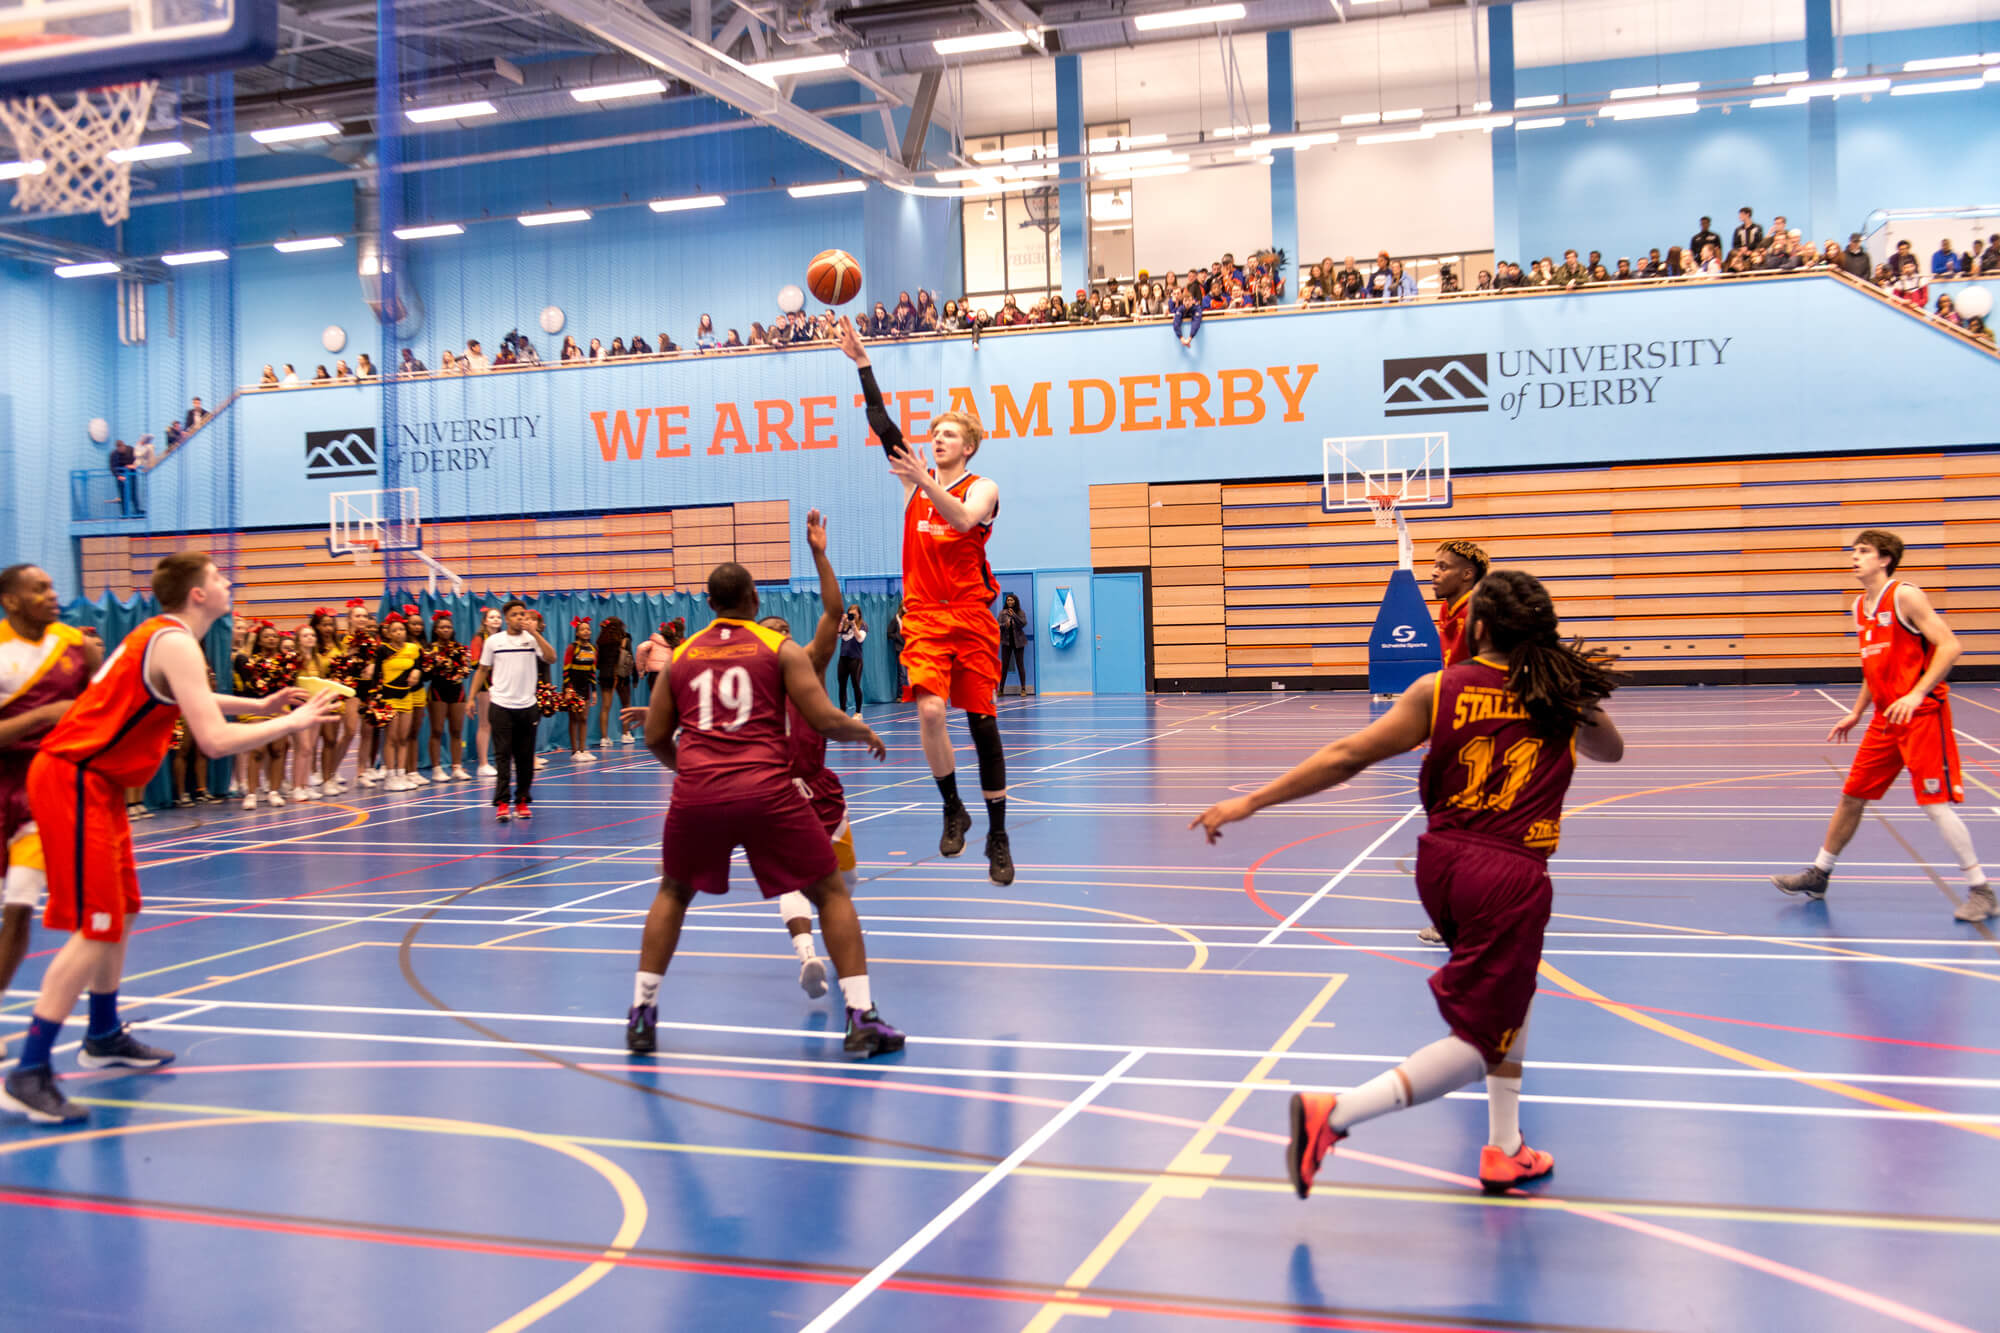 Men's basketball playing in the sports hall for Varsity 2018